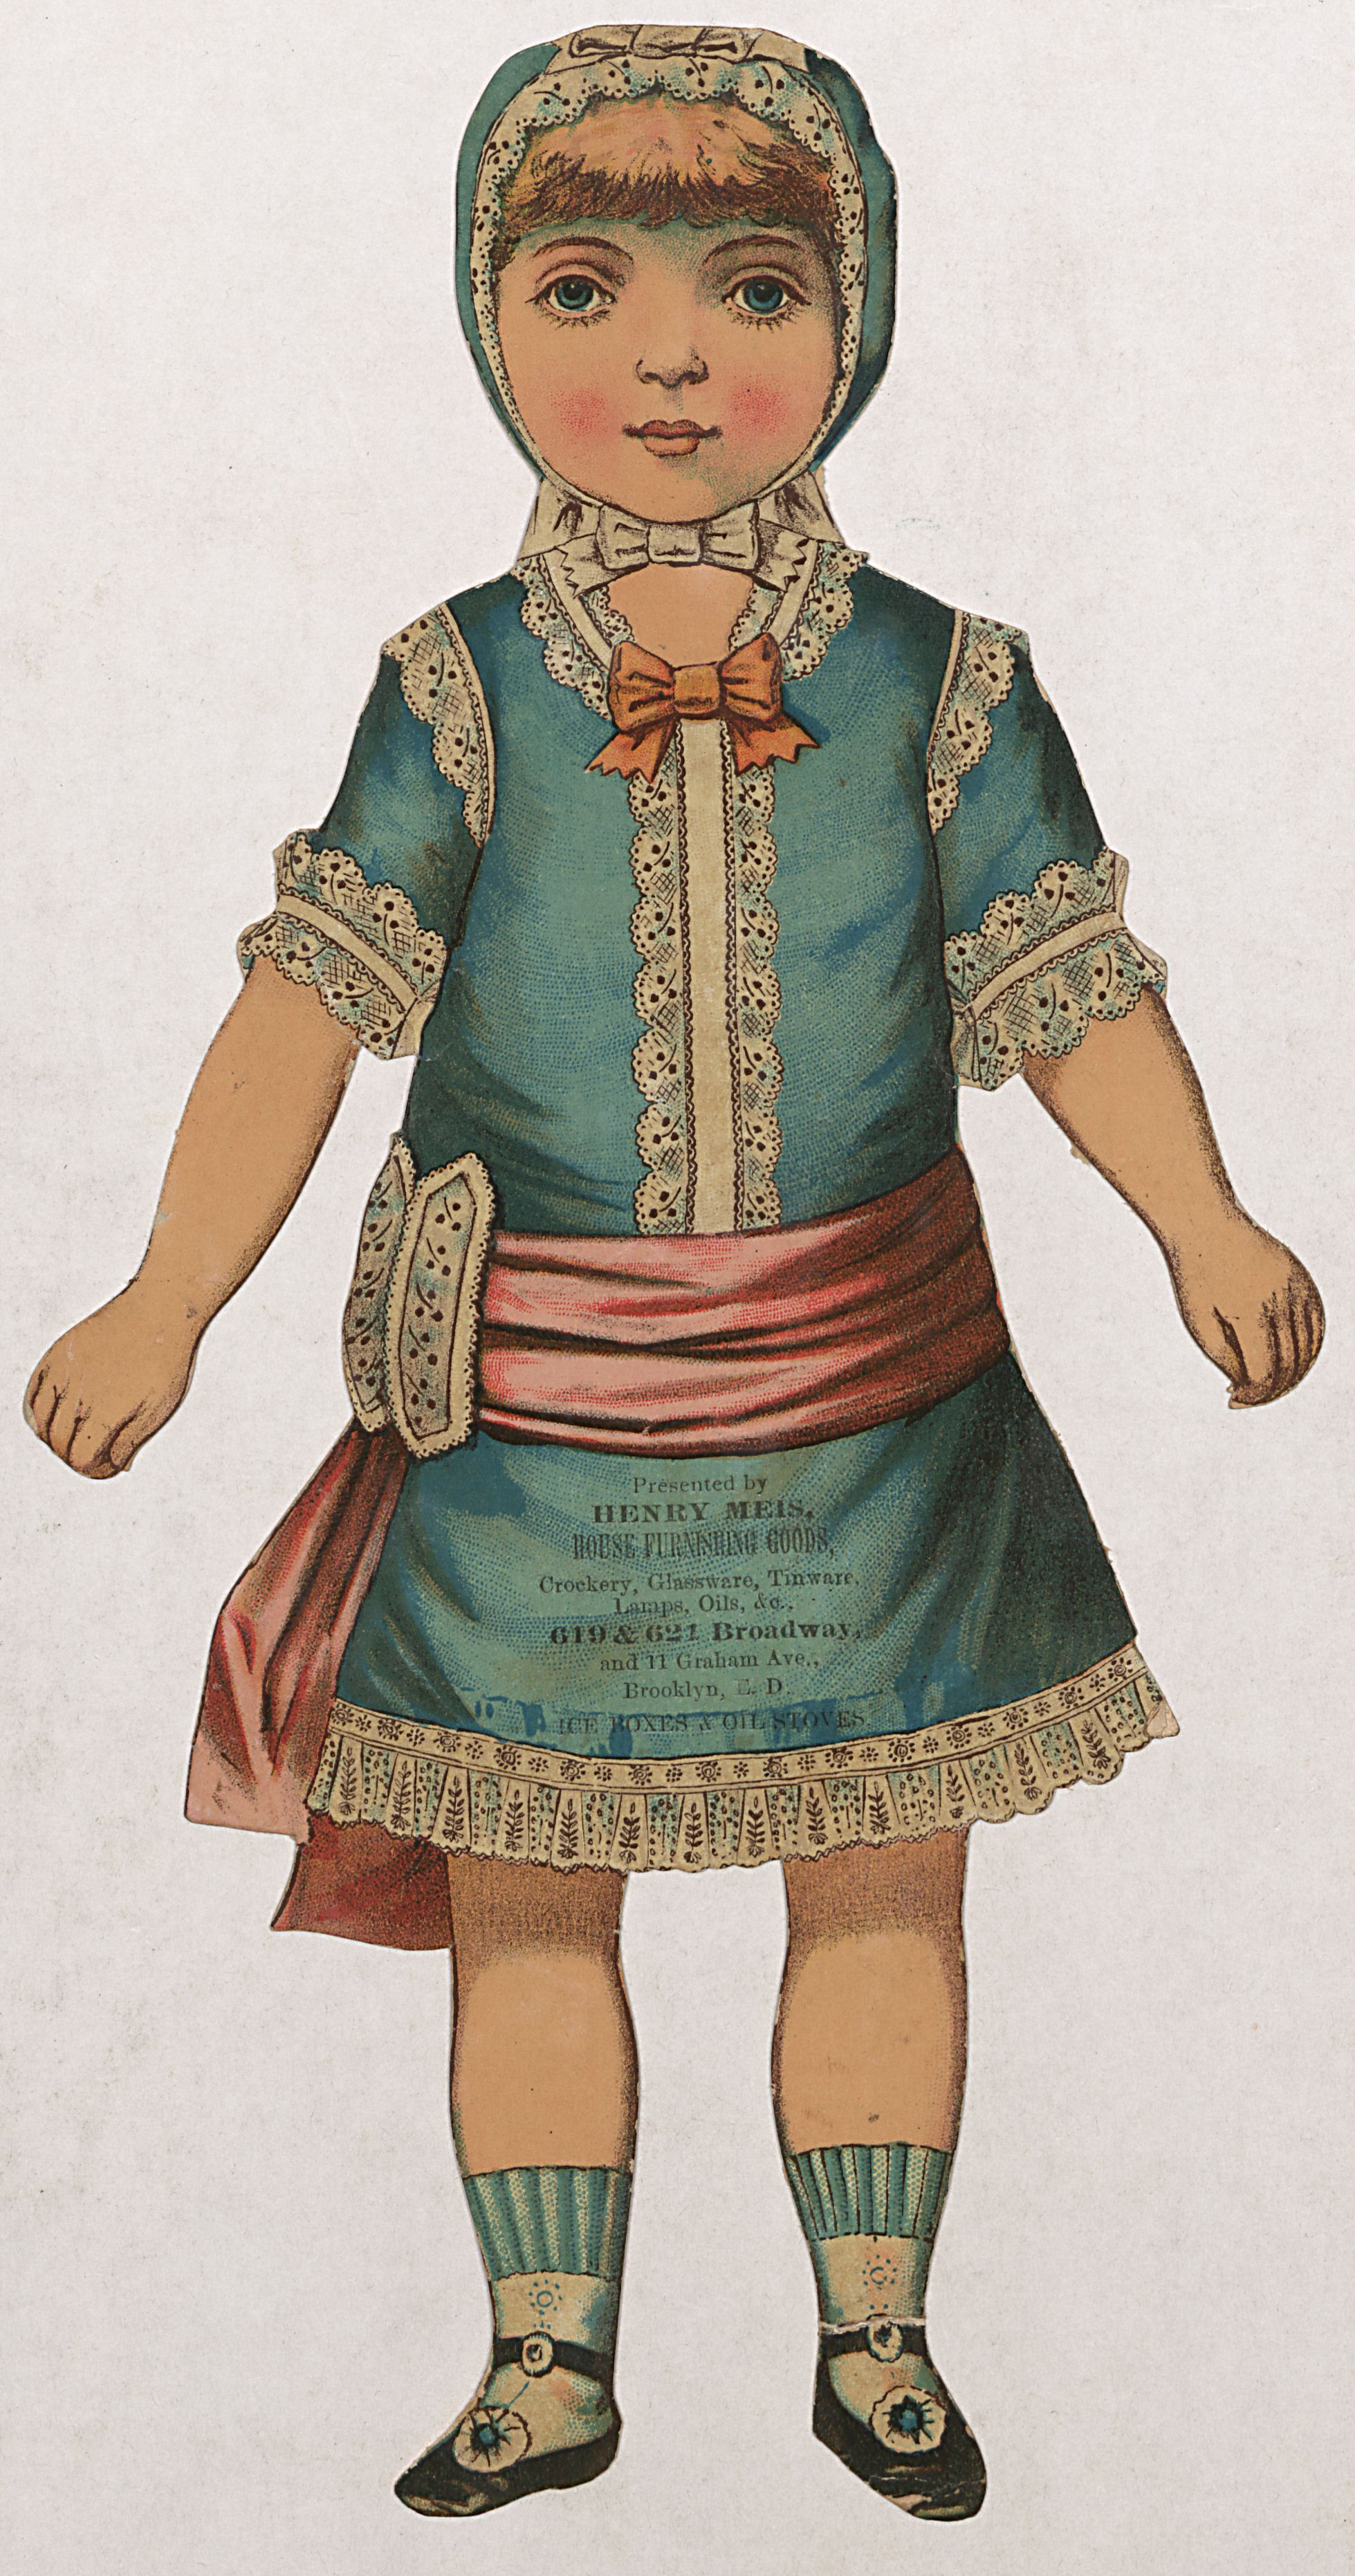 In the 1890s, Henry Meis of Brooklyn advertised his house furnishings store with a paper doll in a bid for future customers. Col. 121, 73x319.56 Maxine Waldron Collection of Children's Books and Paper Toys, Winterthur Library